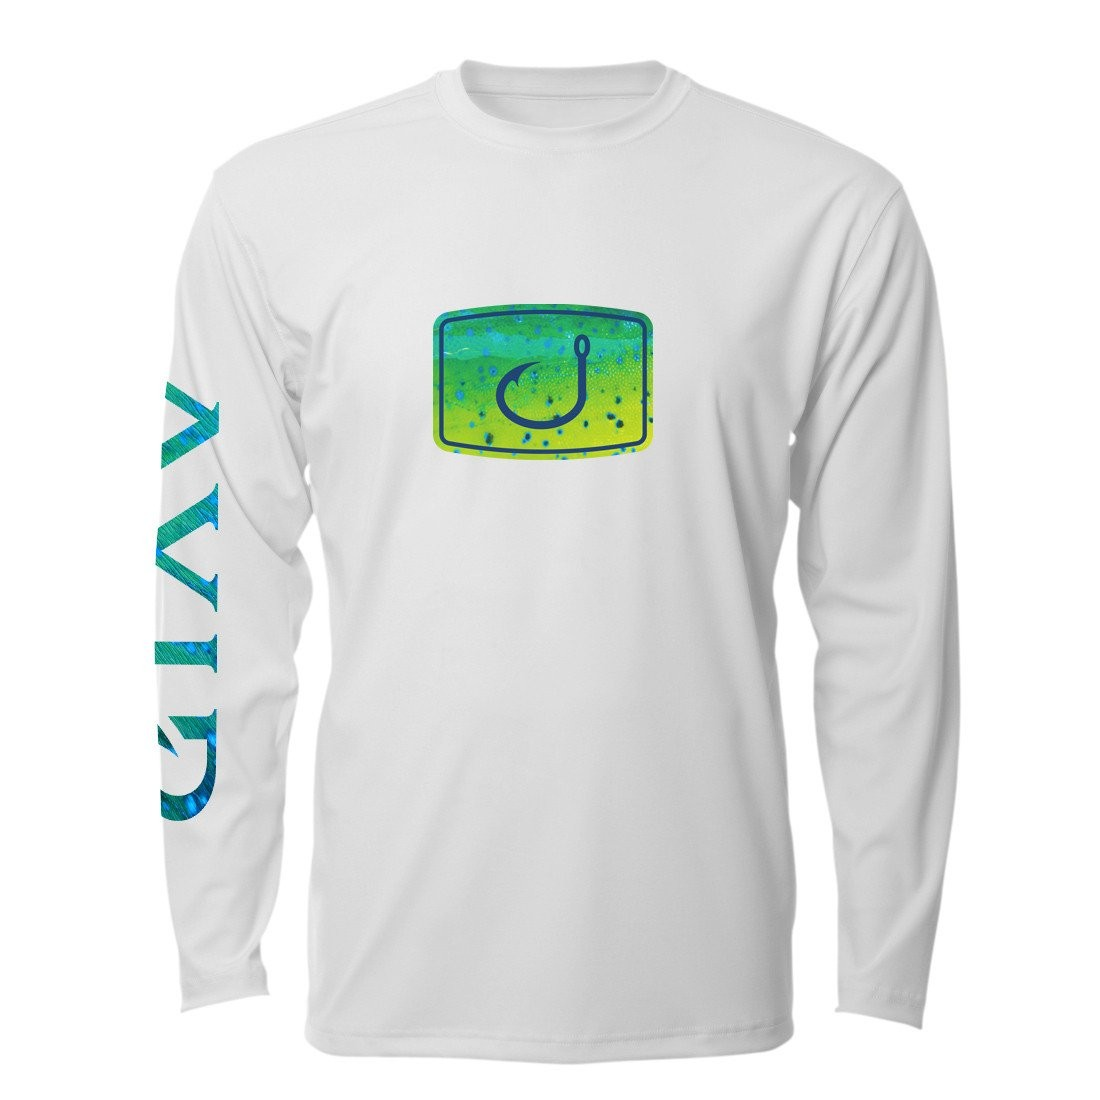 AVID Mahi Fish Fill AVIDry Long Sleeve Performance Shirt